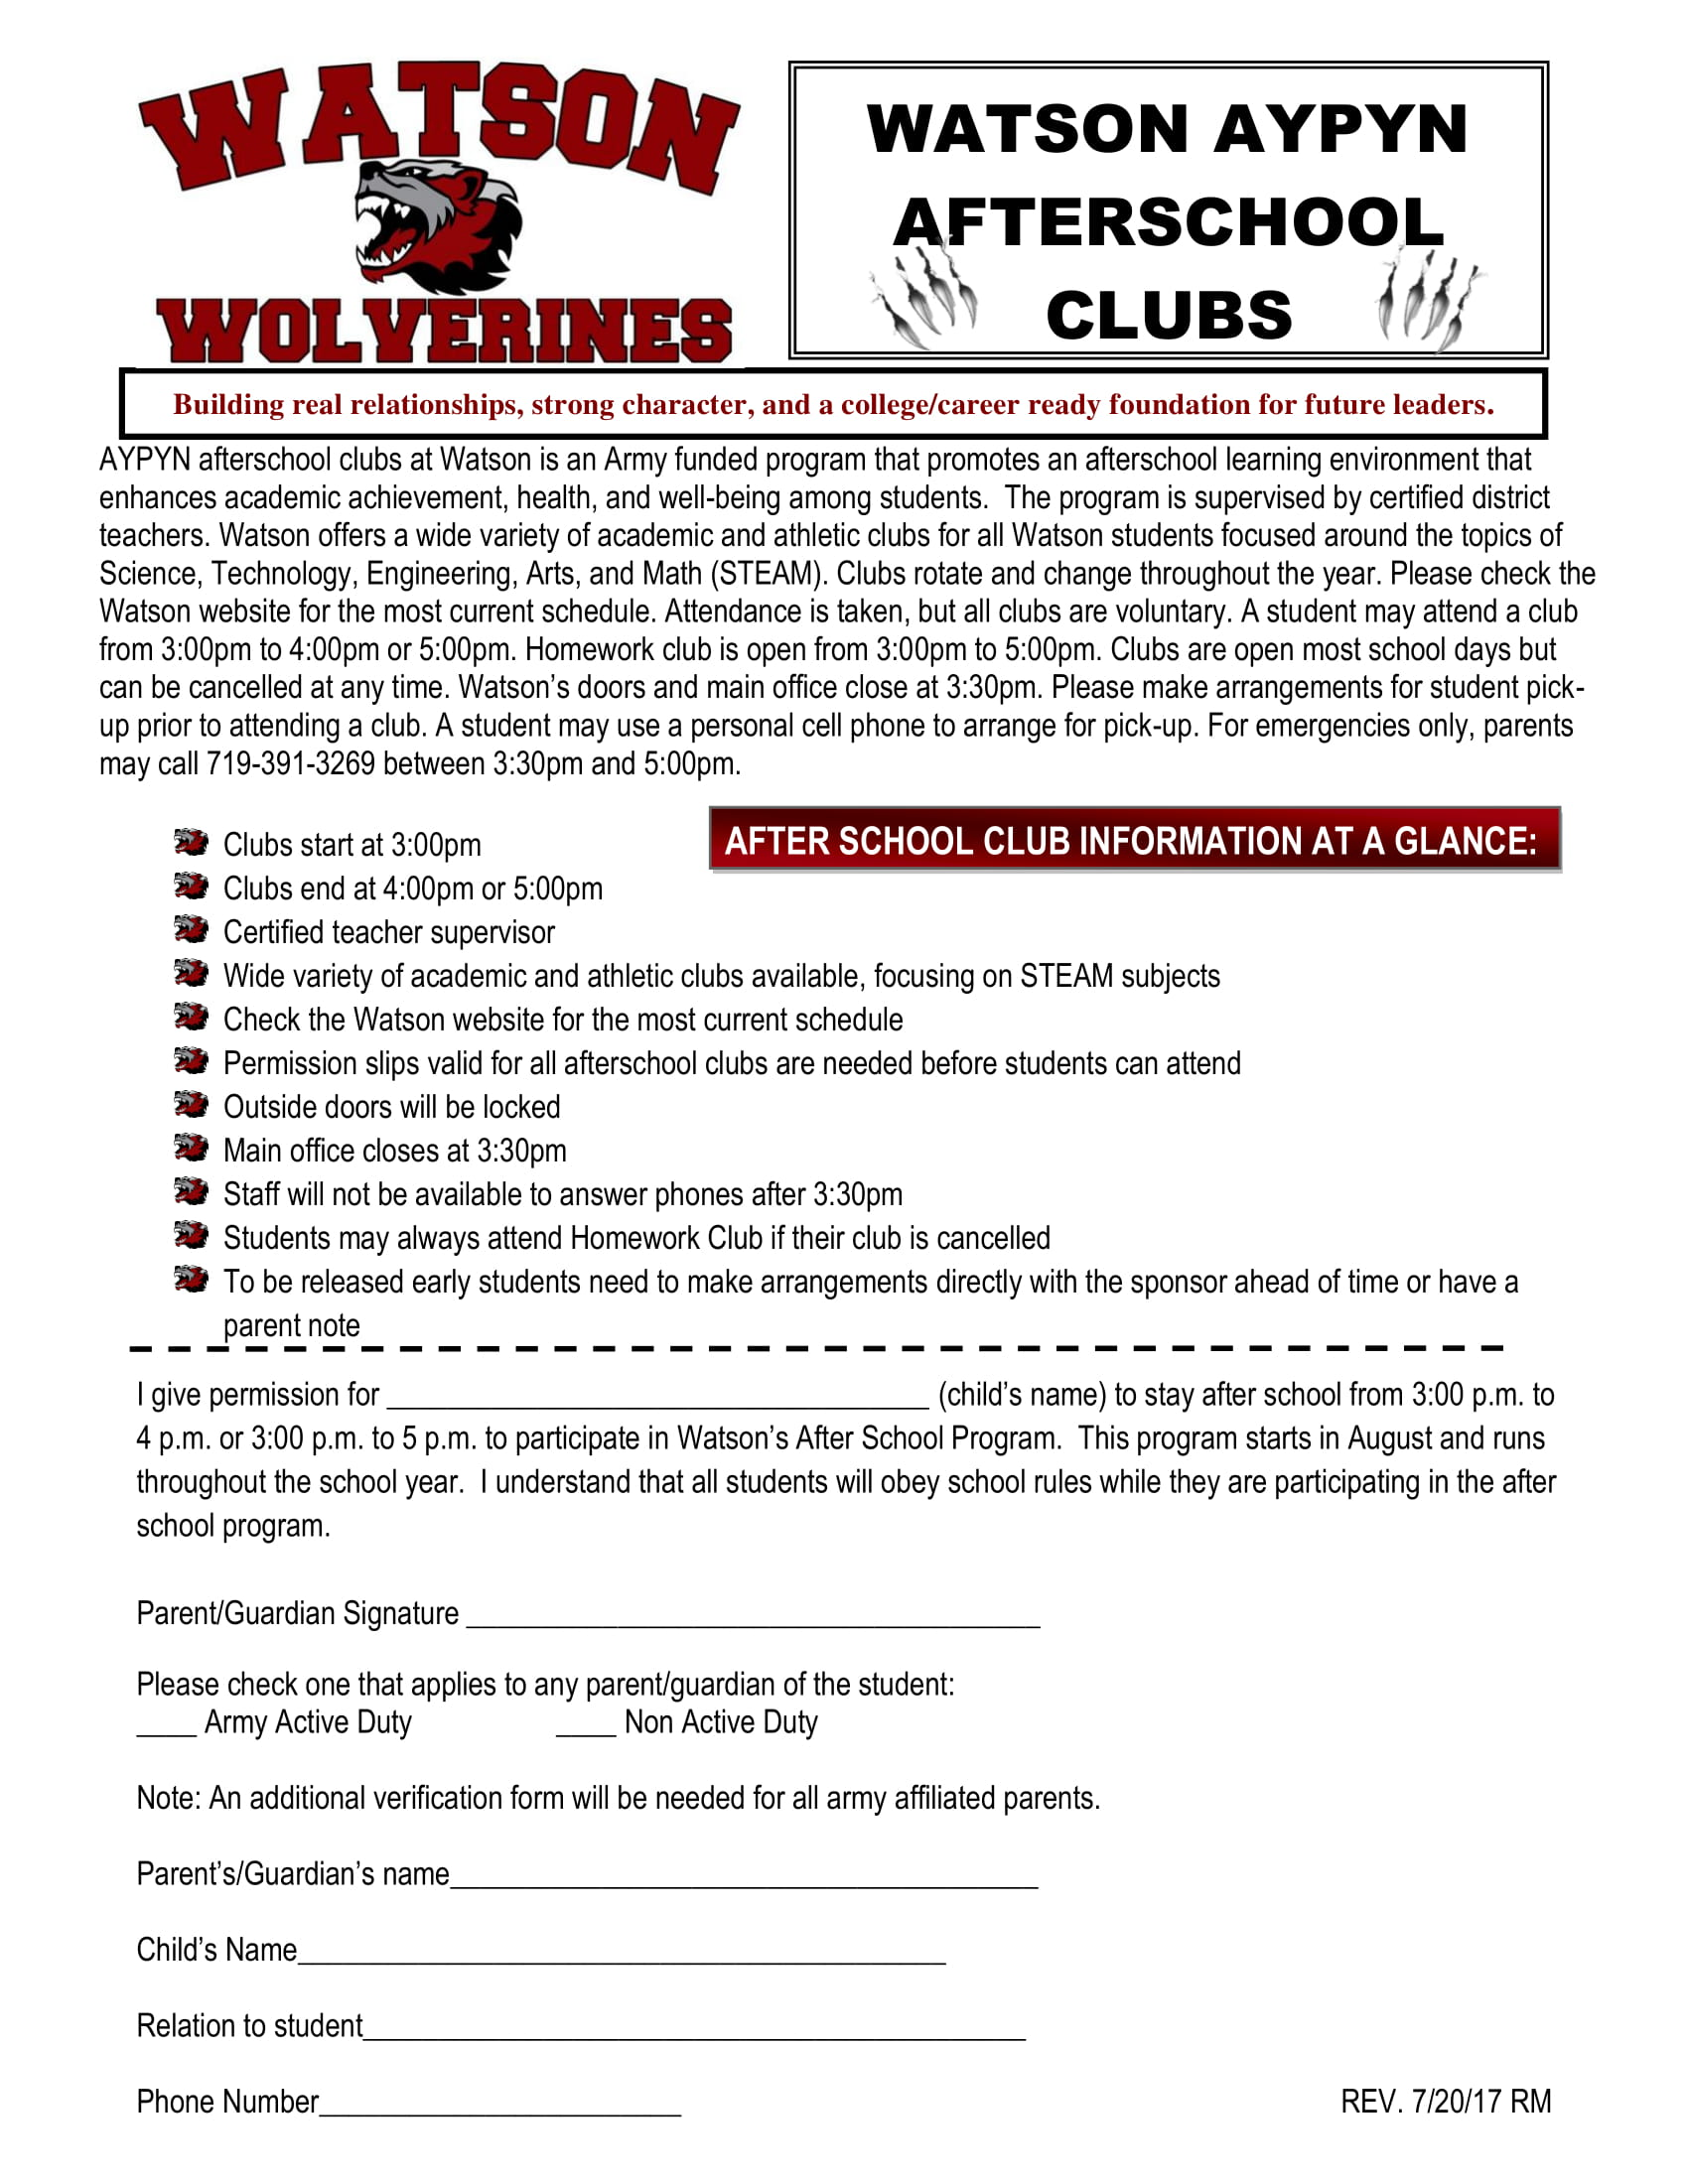 after school club permission slip example